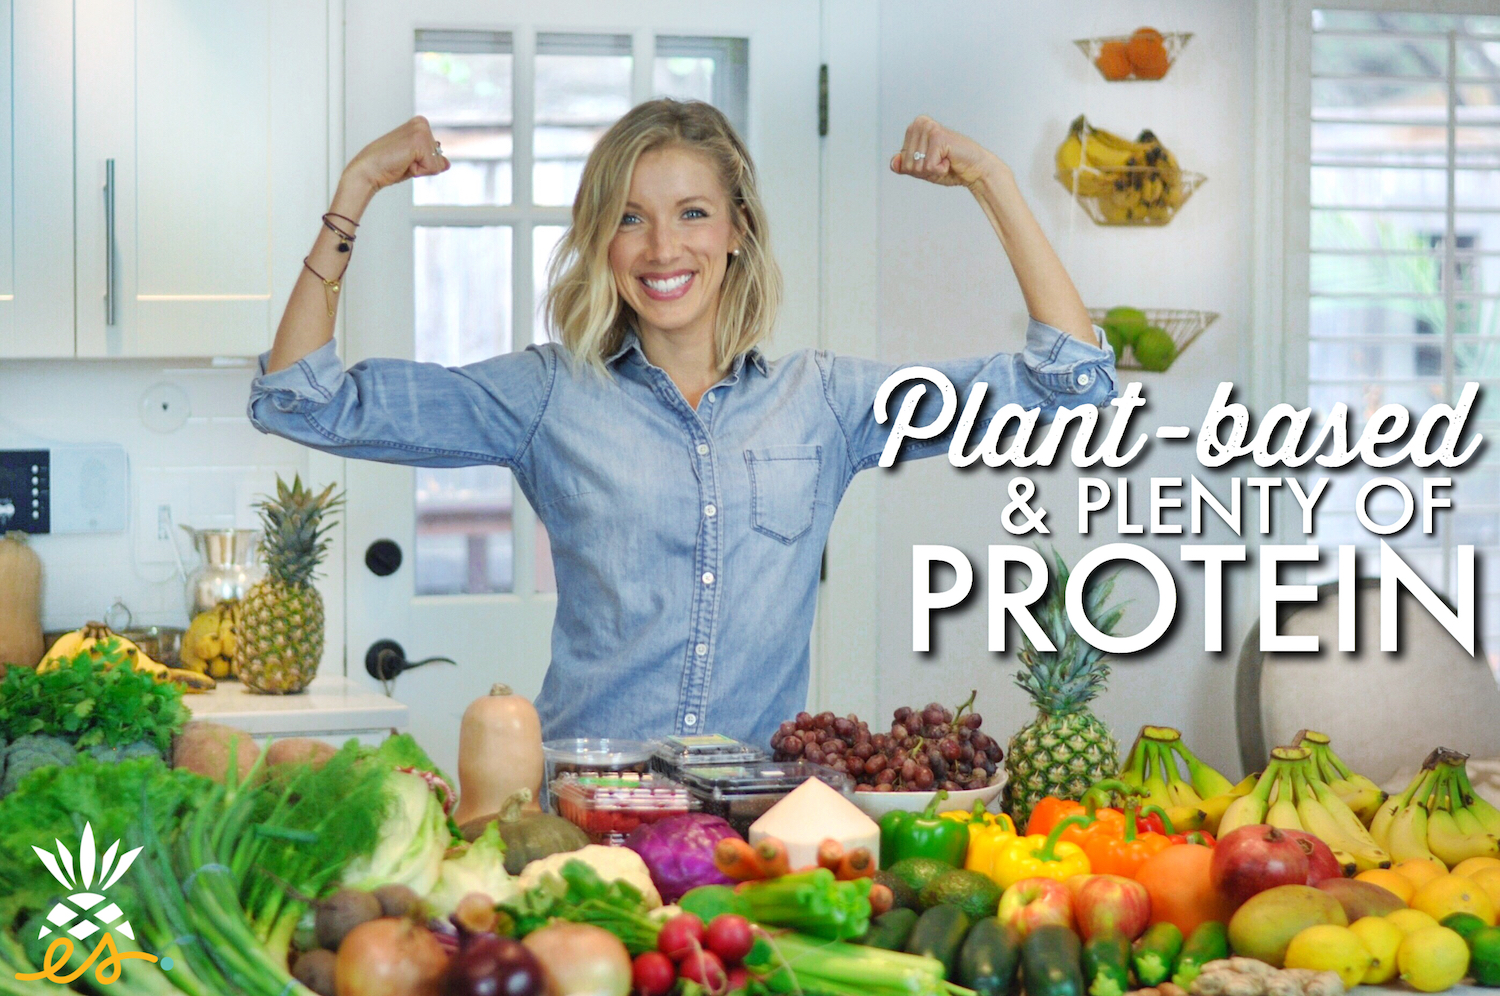 Erin Stanczyk | Lifestyle Design | eat.move.rest. | PLANT-BASED, PLANT-POWERED, PLANT-STRONG: WHERE DO YOU GET YOUR PROTEIN?